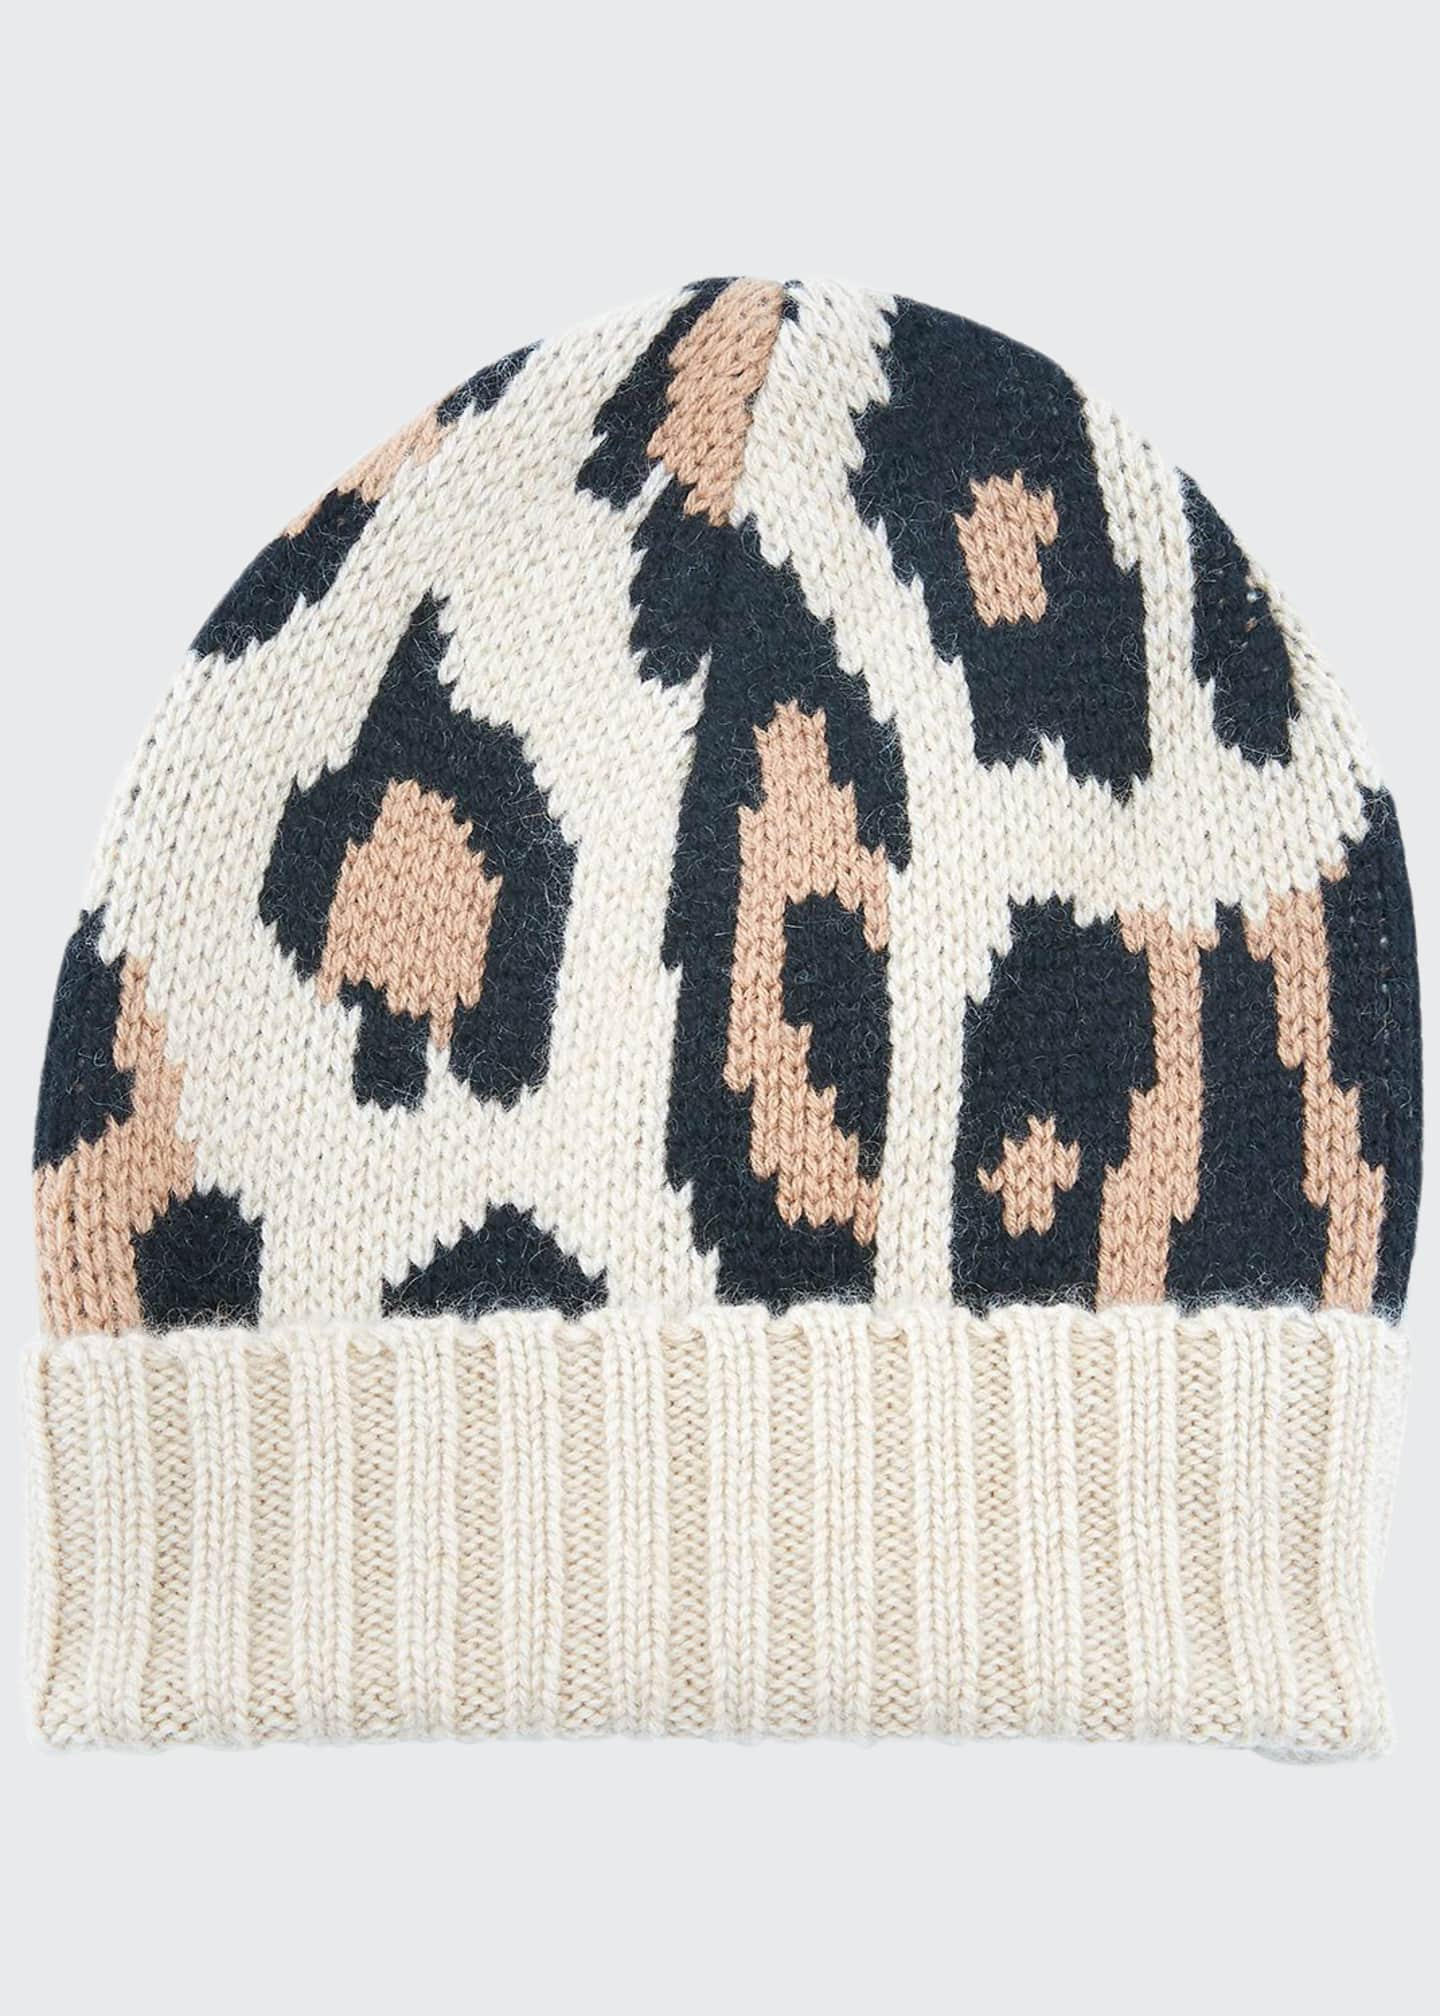 Image 1 of 1: Alexis Animal Pattern Cashmere Beanie Hat